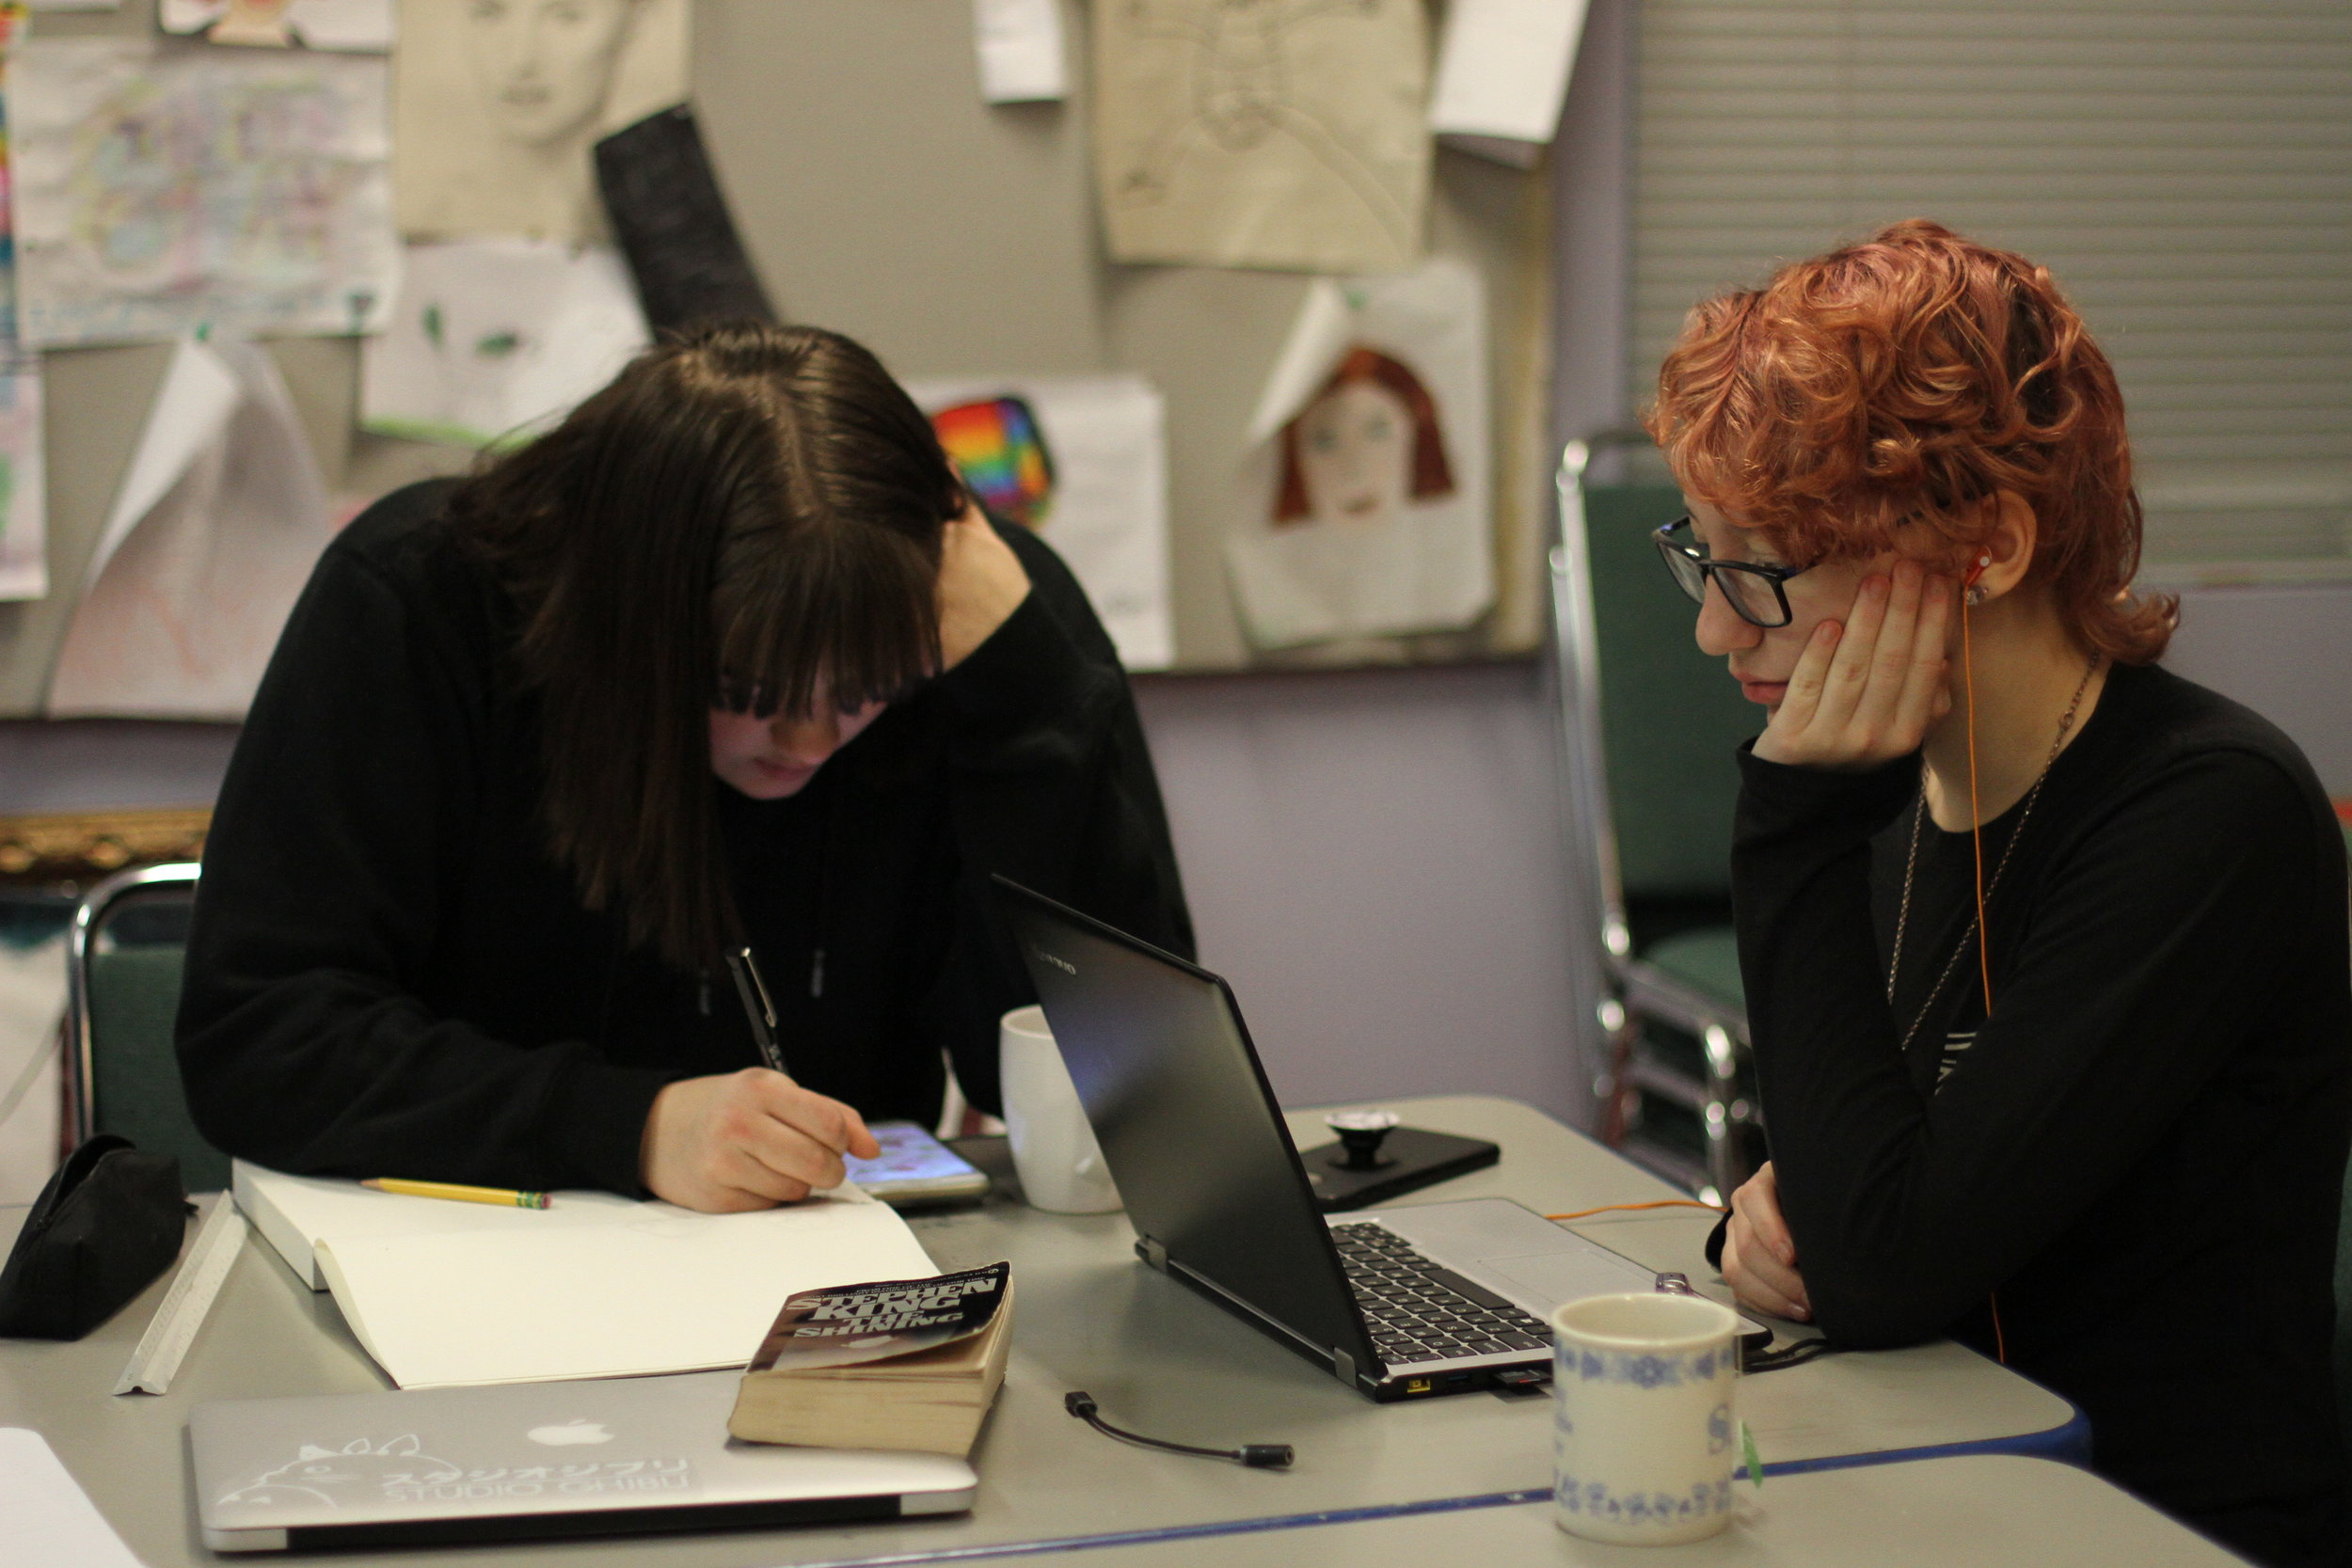 Two students drawing and studying in the art room.